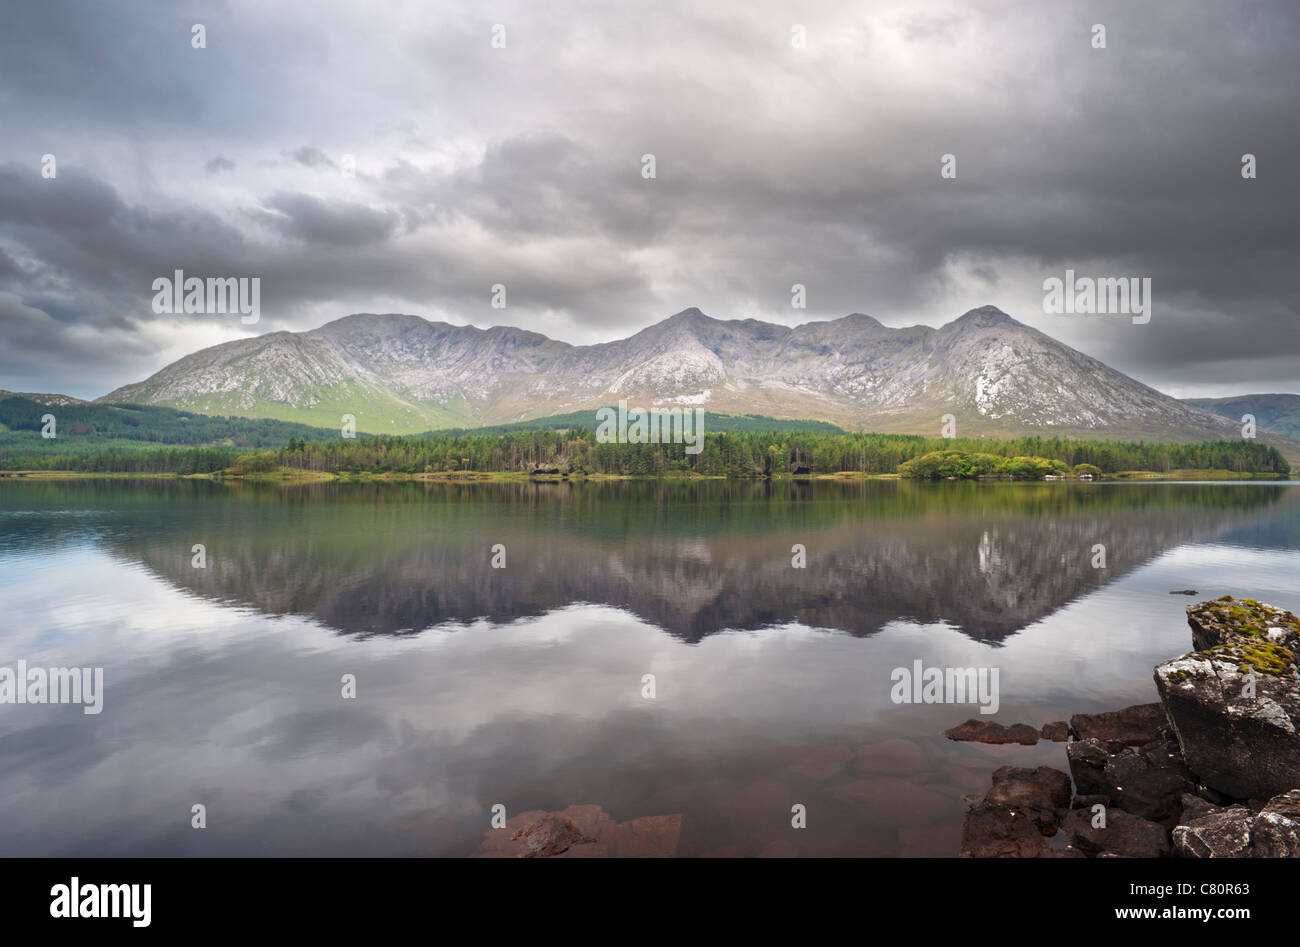 Early morning at Lough Inagh, Connemara, Co Galway, Ireland, with the Twelve Bens mountain range in the background - Stock Image